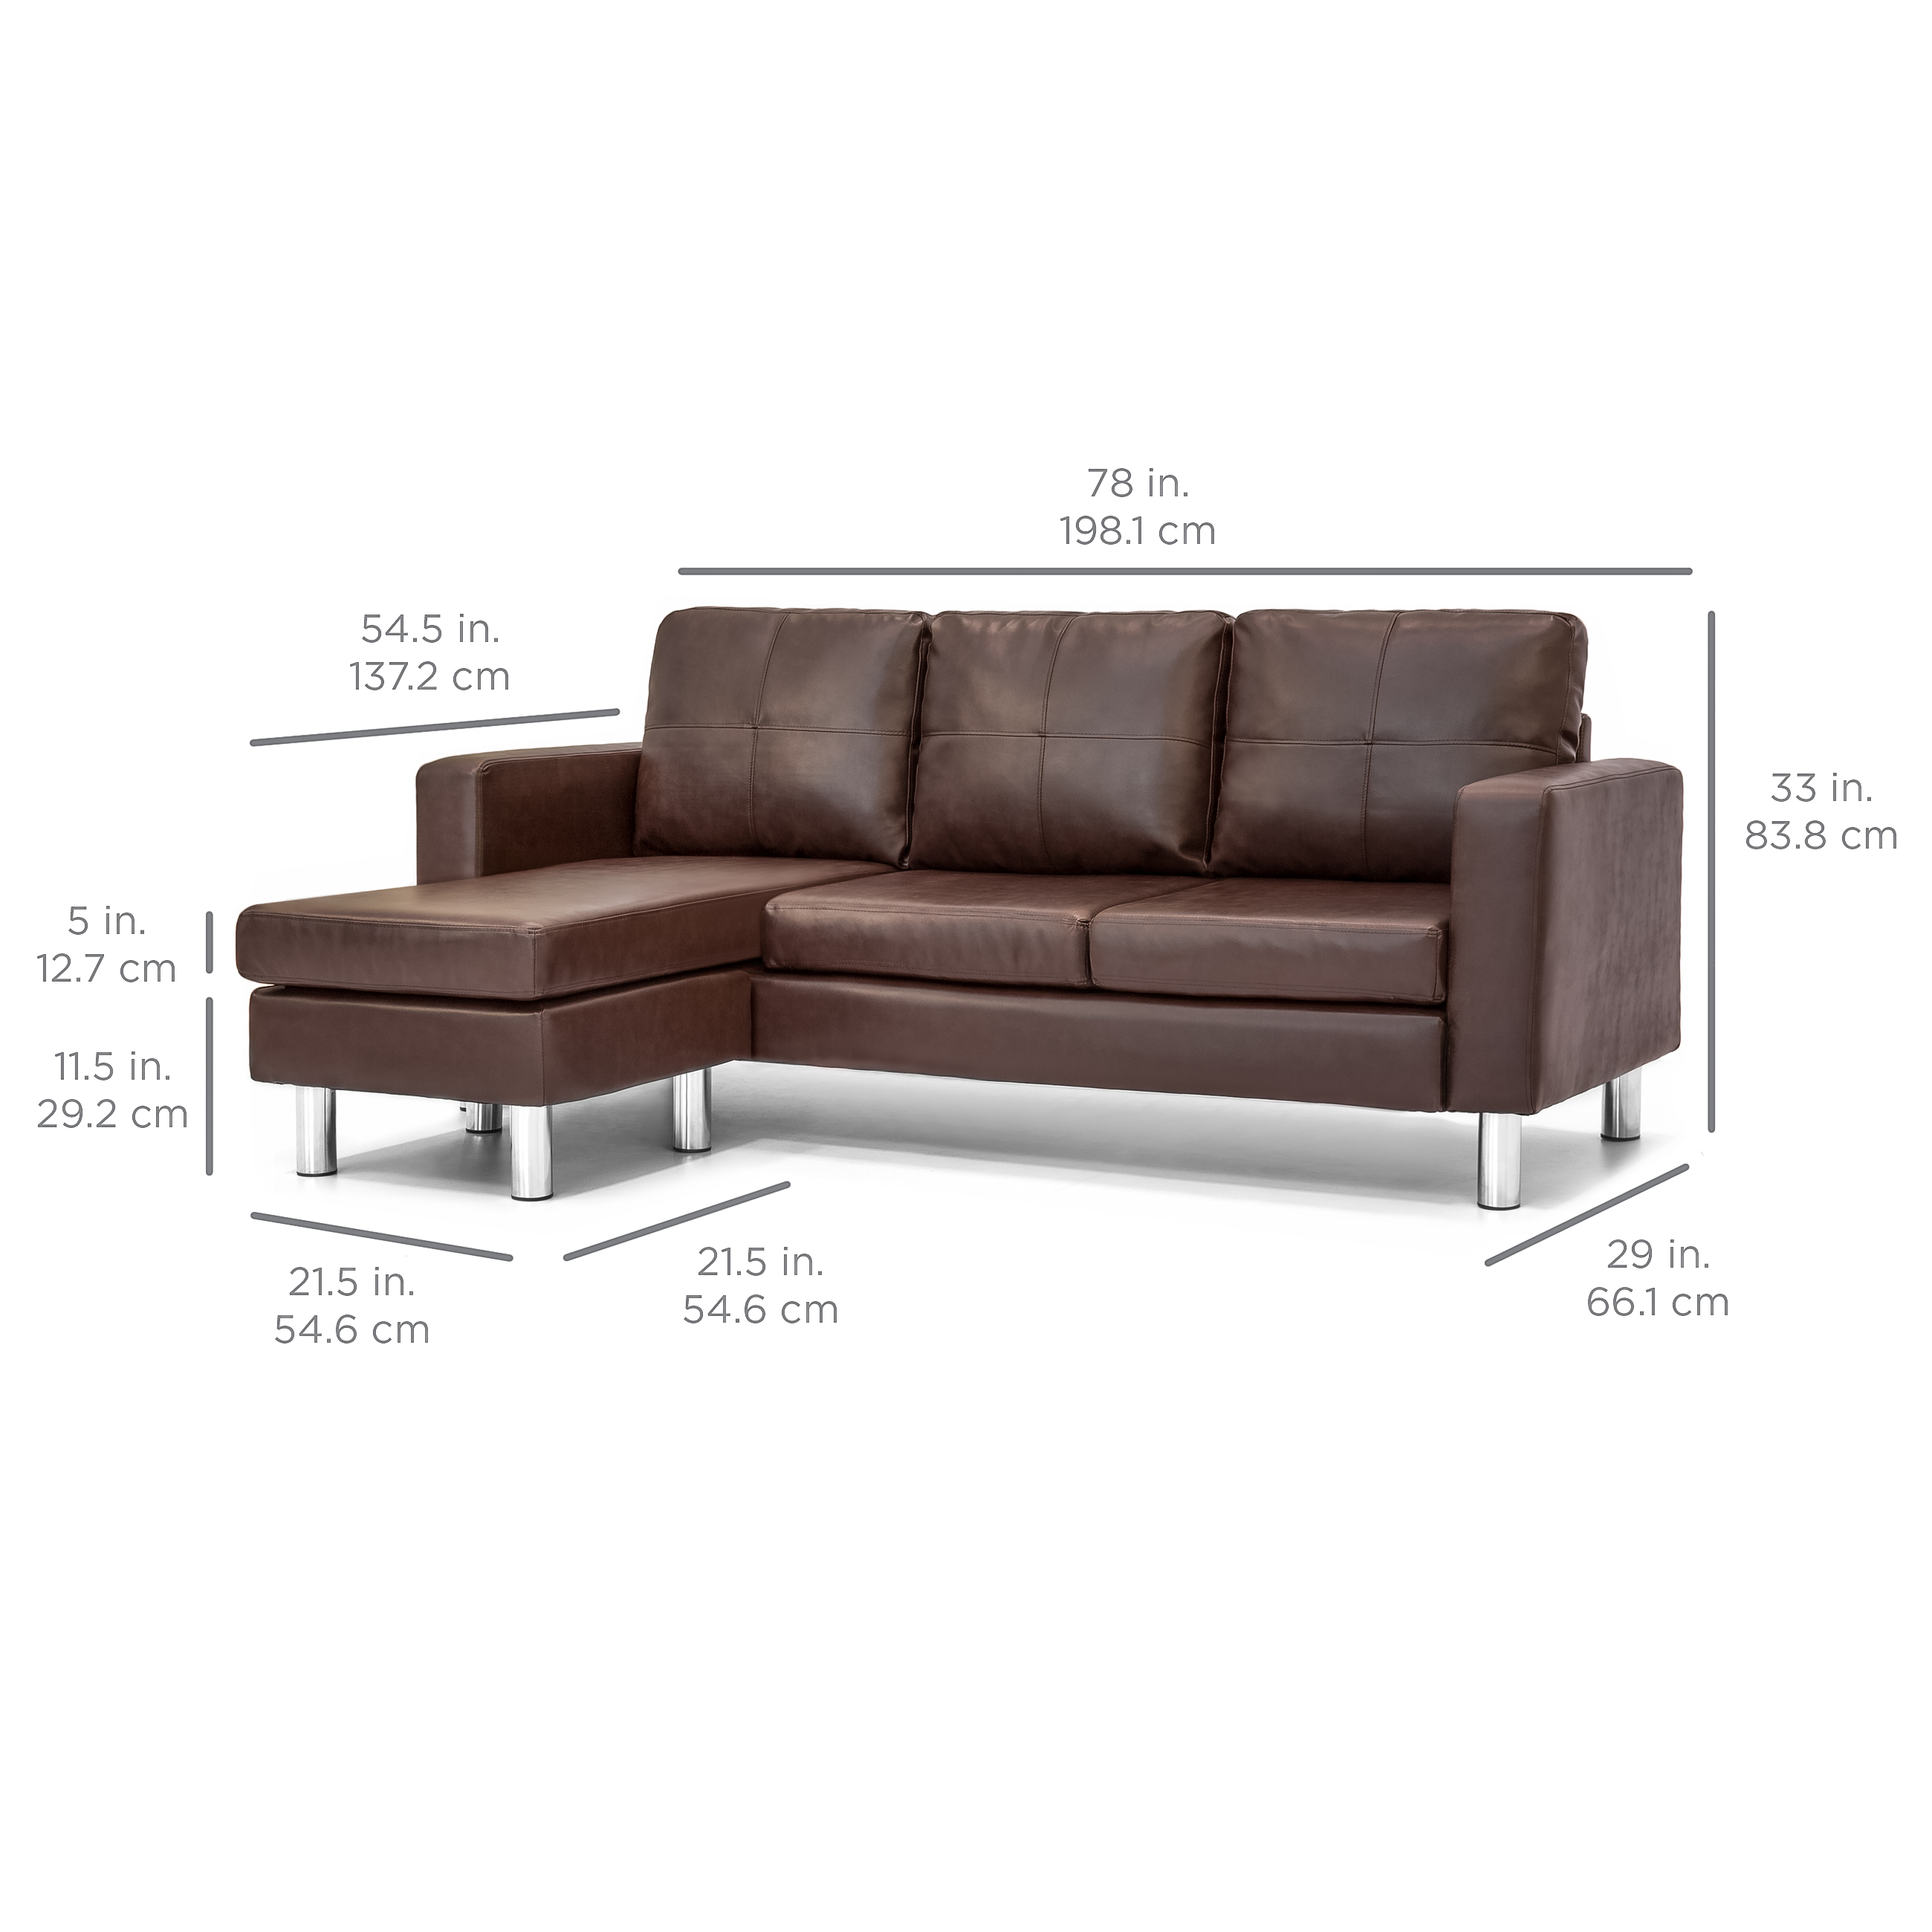 L Sofa Best Choice Products Leather L Shape Sectional Sofa Couch W Reversible Chaise Ottoman Brown